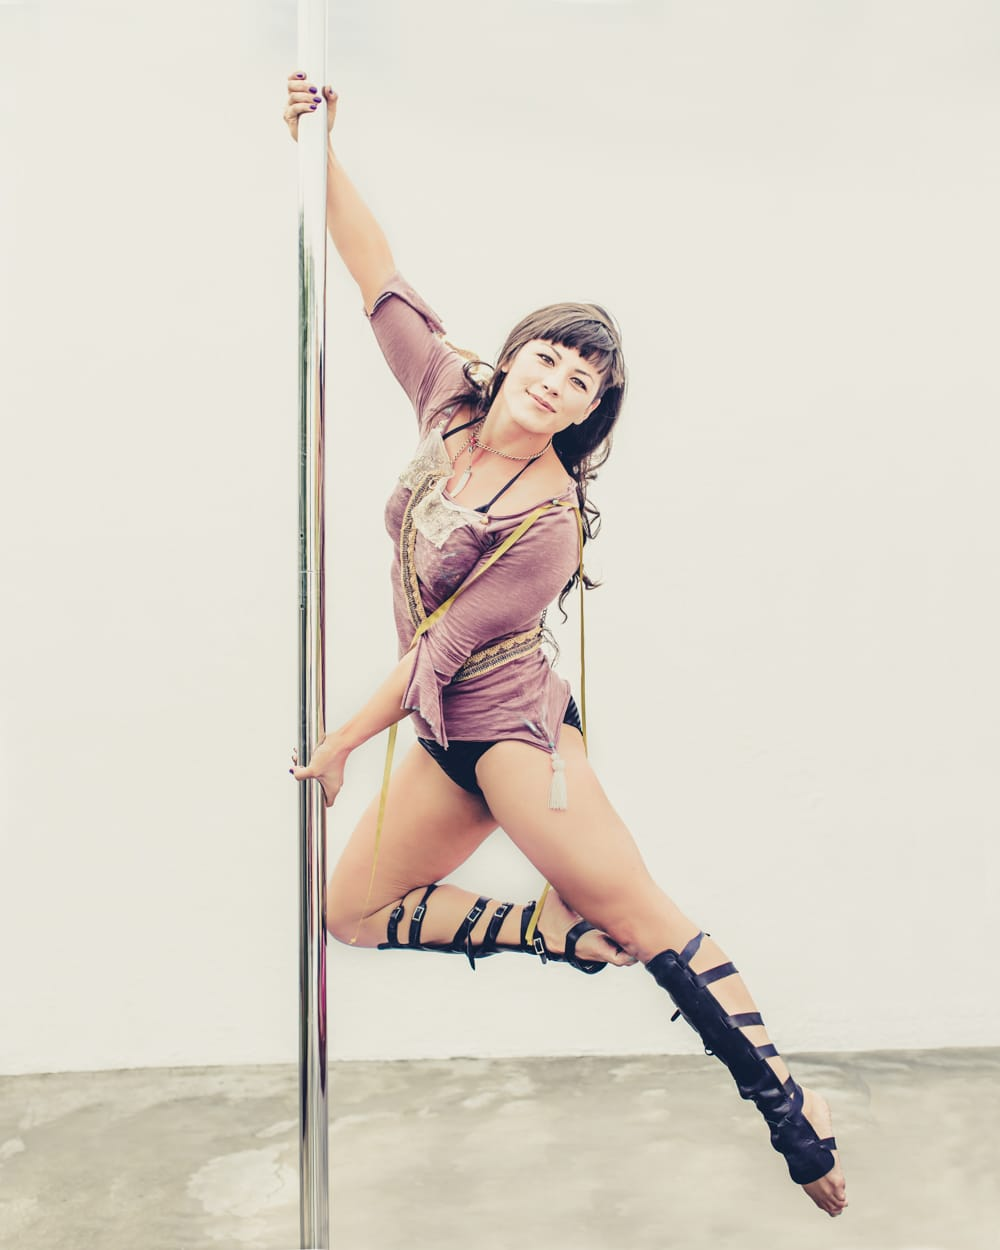 pole_couture_photos_by_gregory_beylerian-5